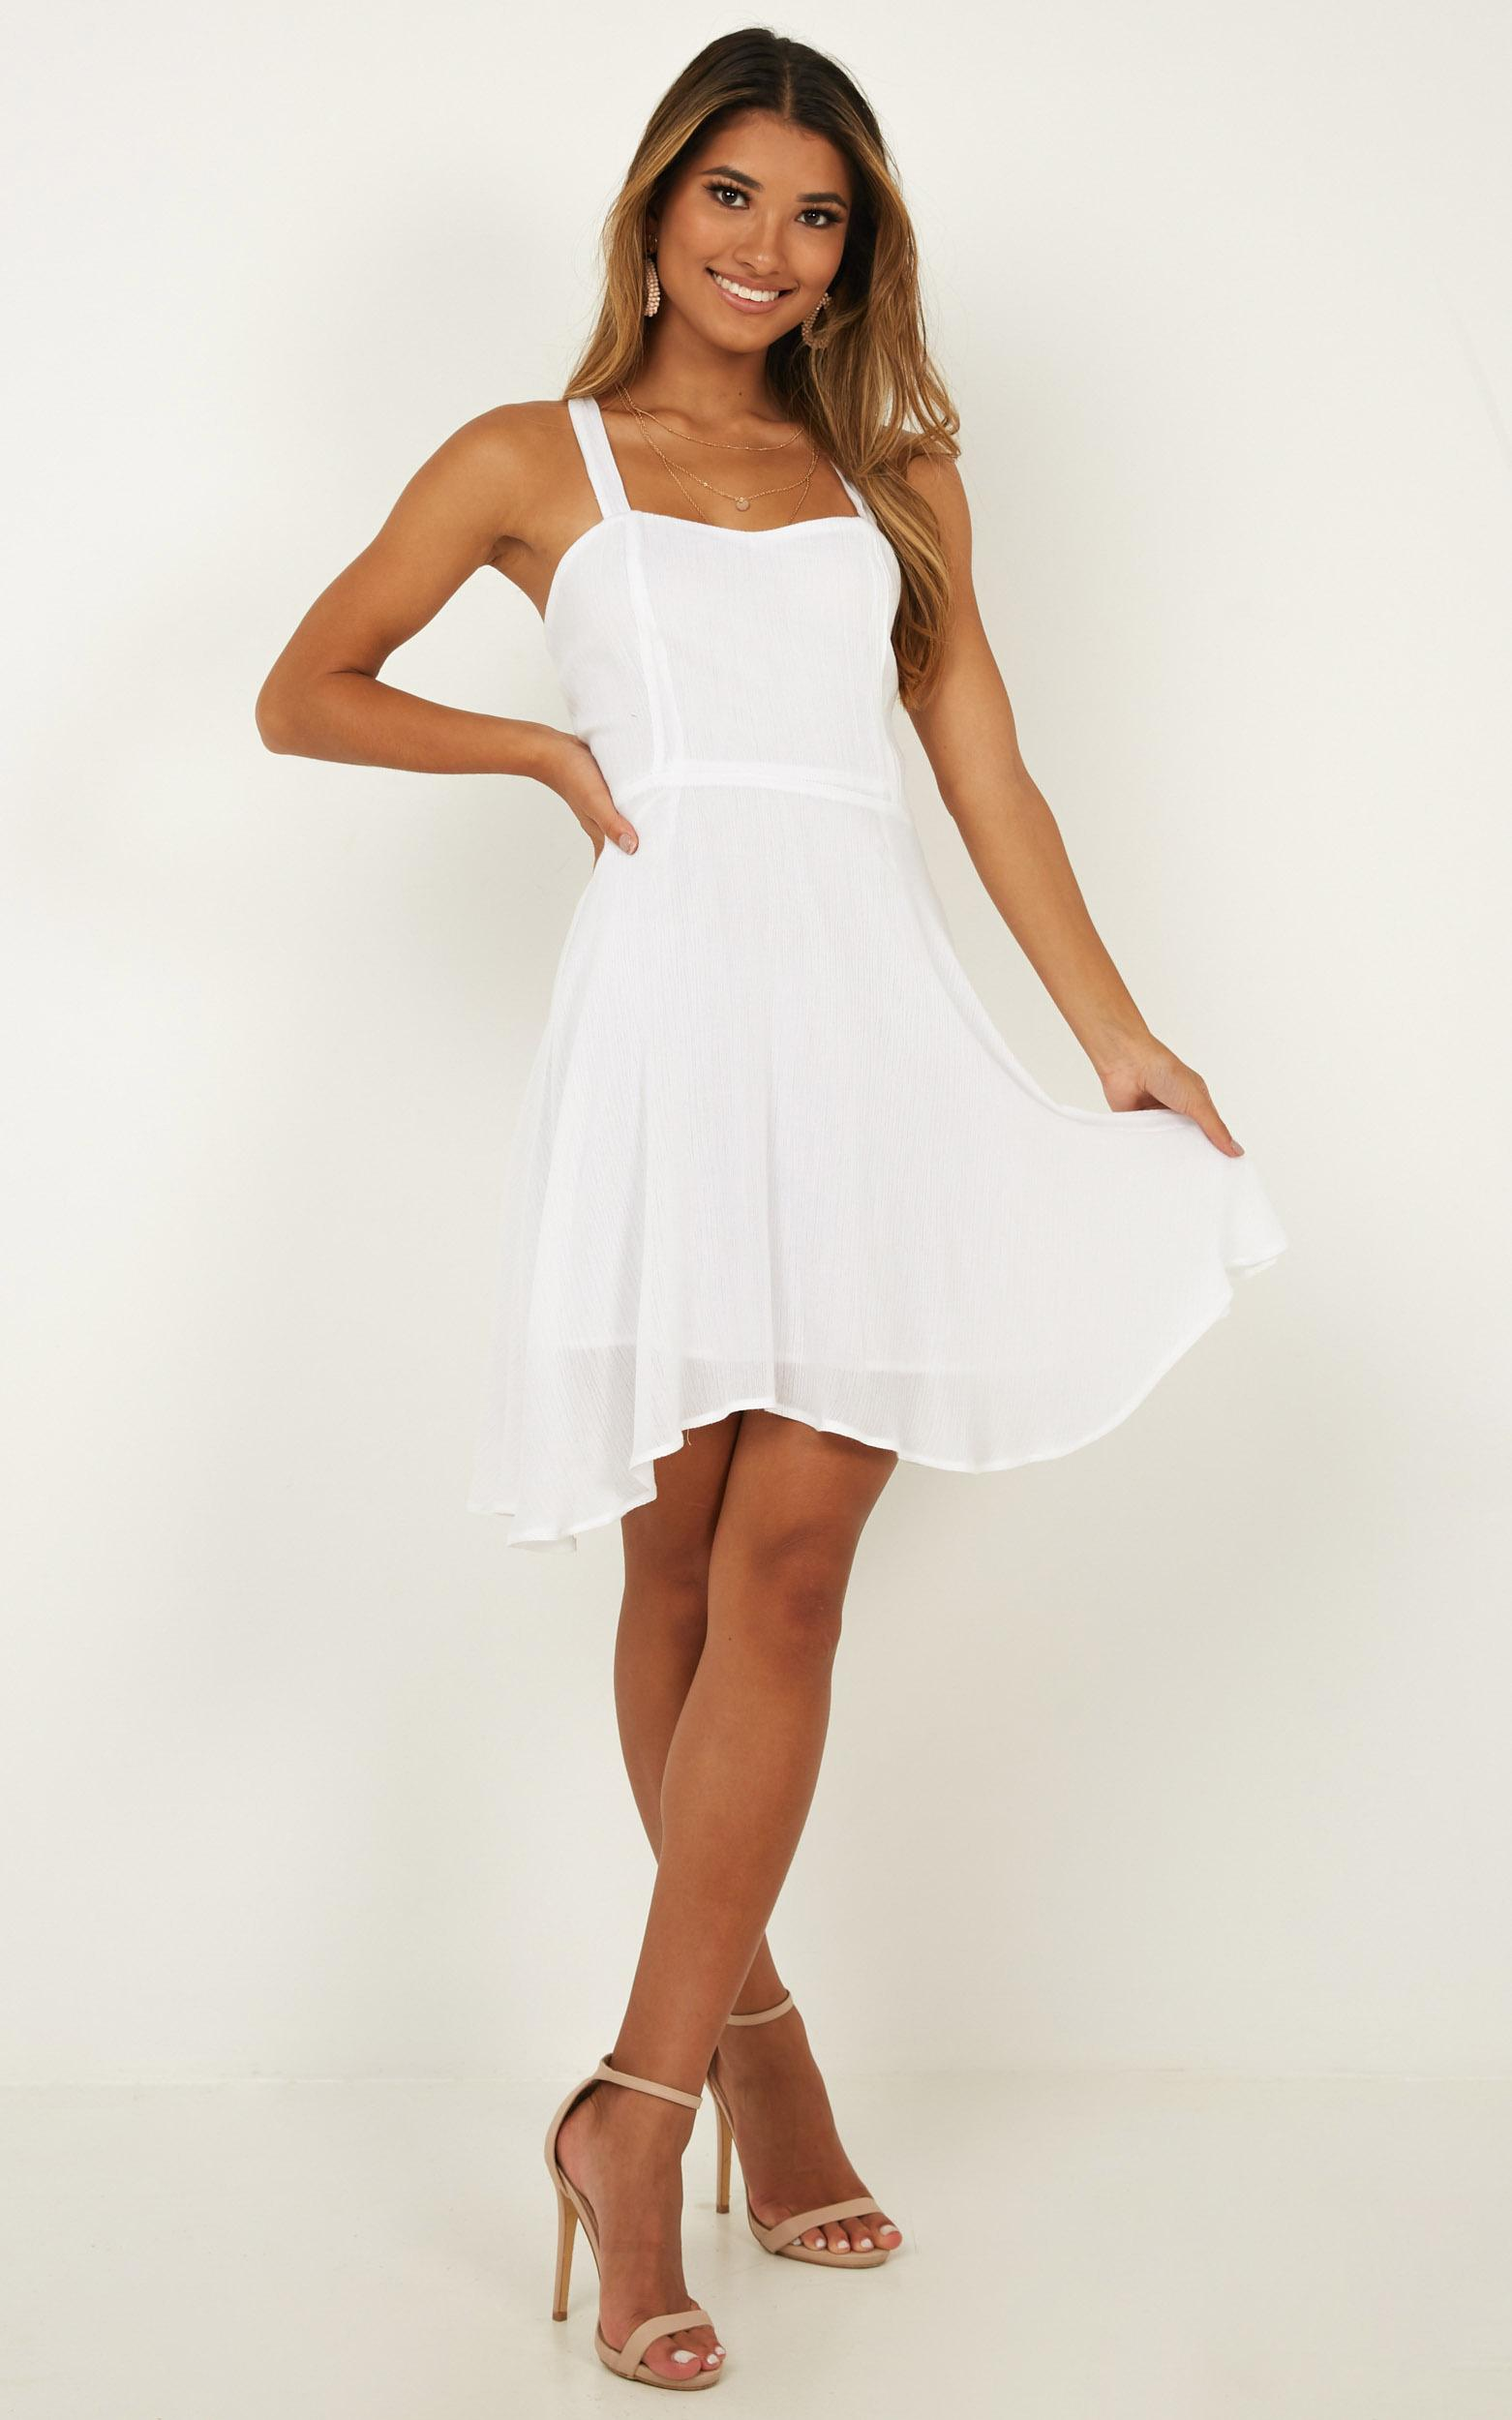 Soaring For You Dress in white - 20 (XXXXL), White, hi-res image number null